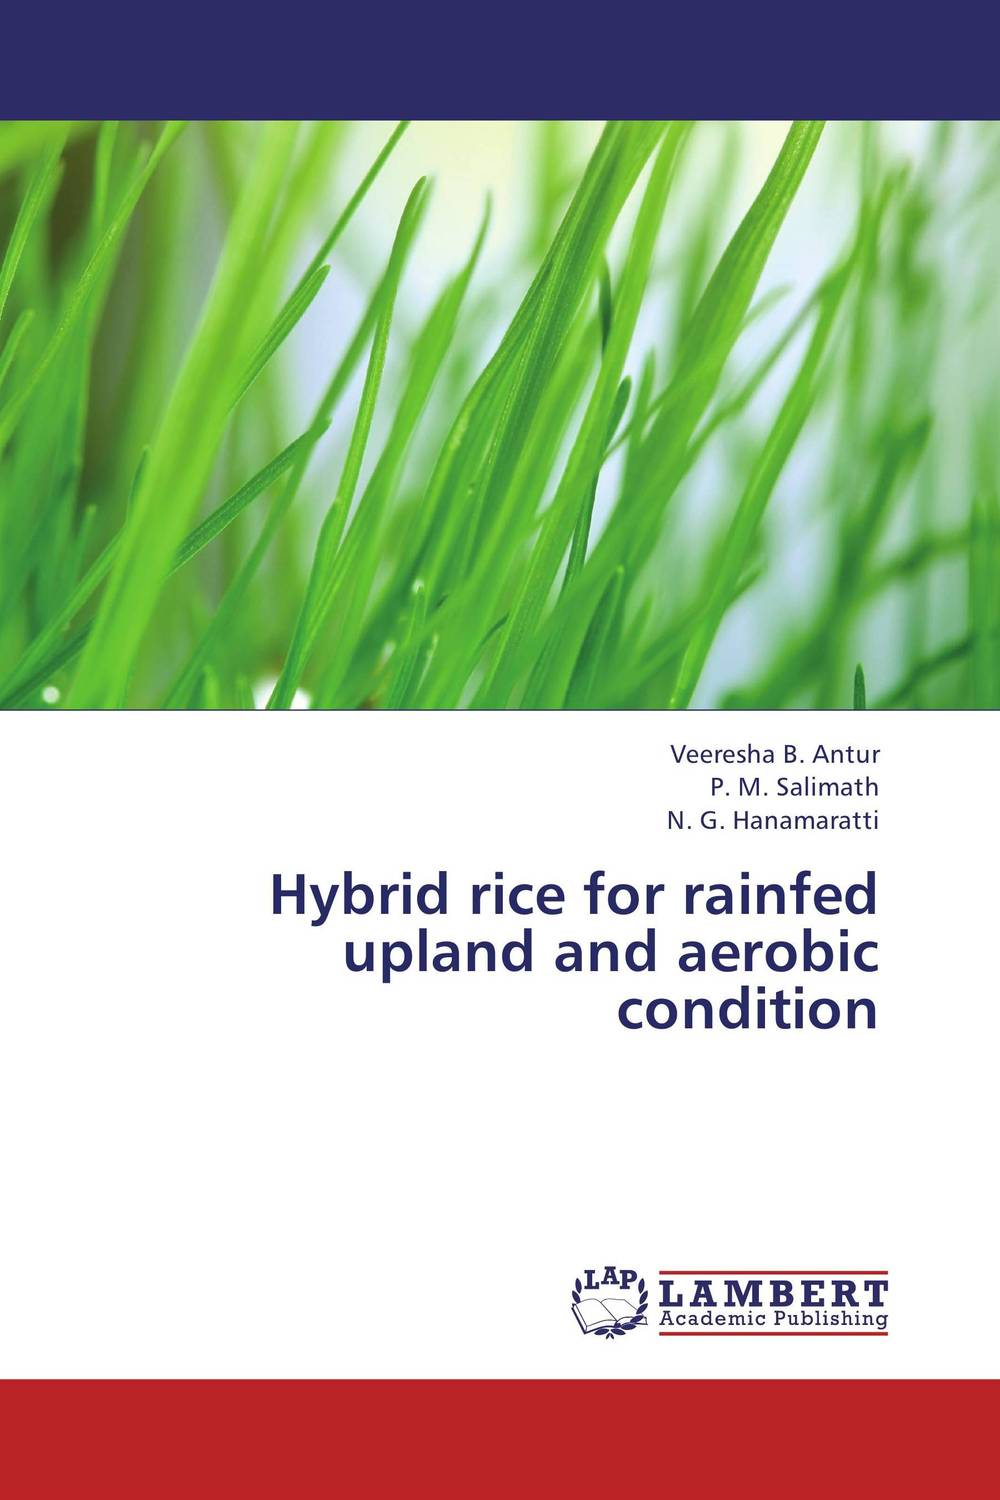 Hybrid rice for rainfed upland and aerobic condition dali epicon 8 white gloss